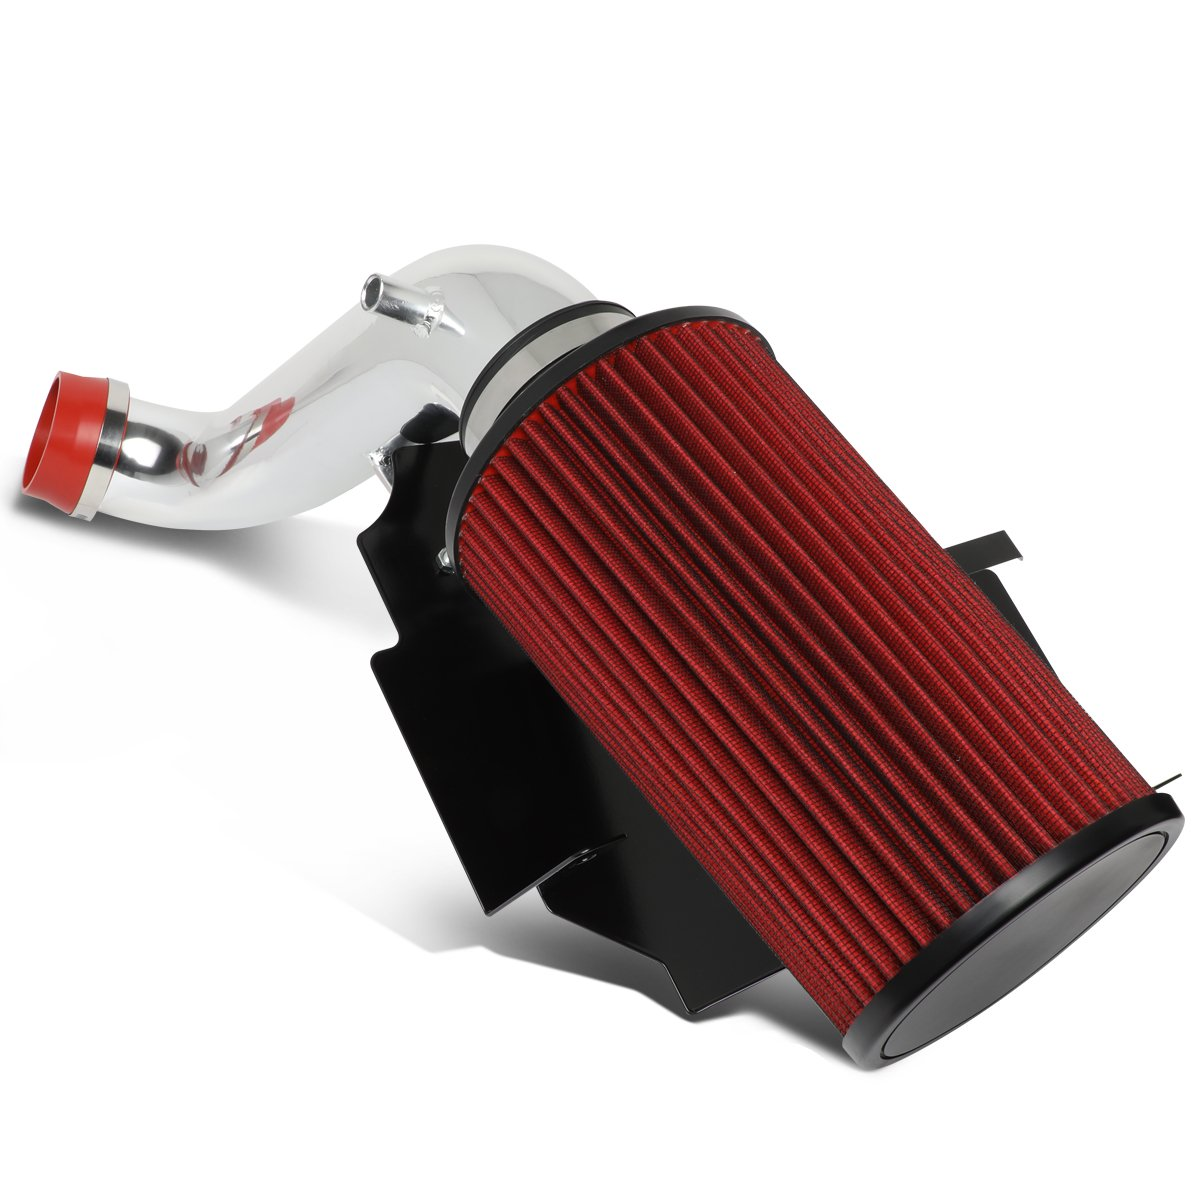 For 2002-2003 Jeep Liberty 3.7L V6 Aluminum Lightweight Hi-Flow Air Intake Kit w/Heat Shield+Red Filter Auto Dynasty